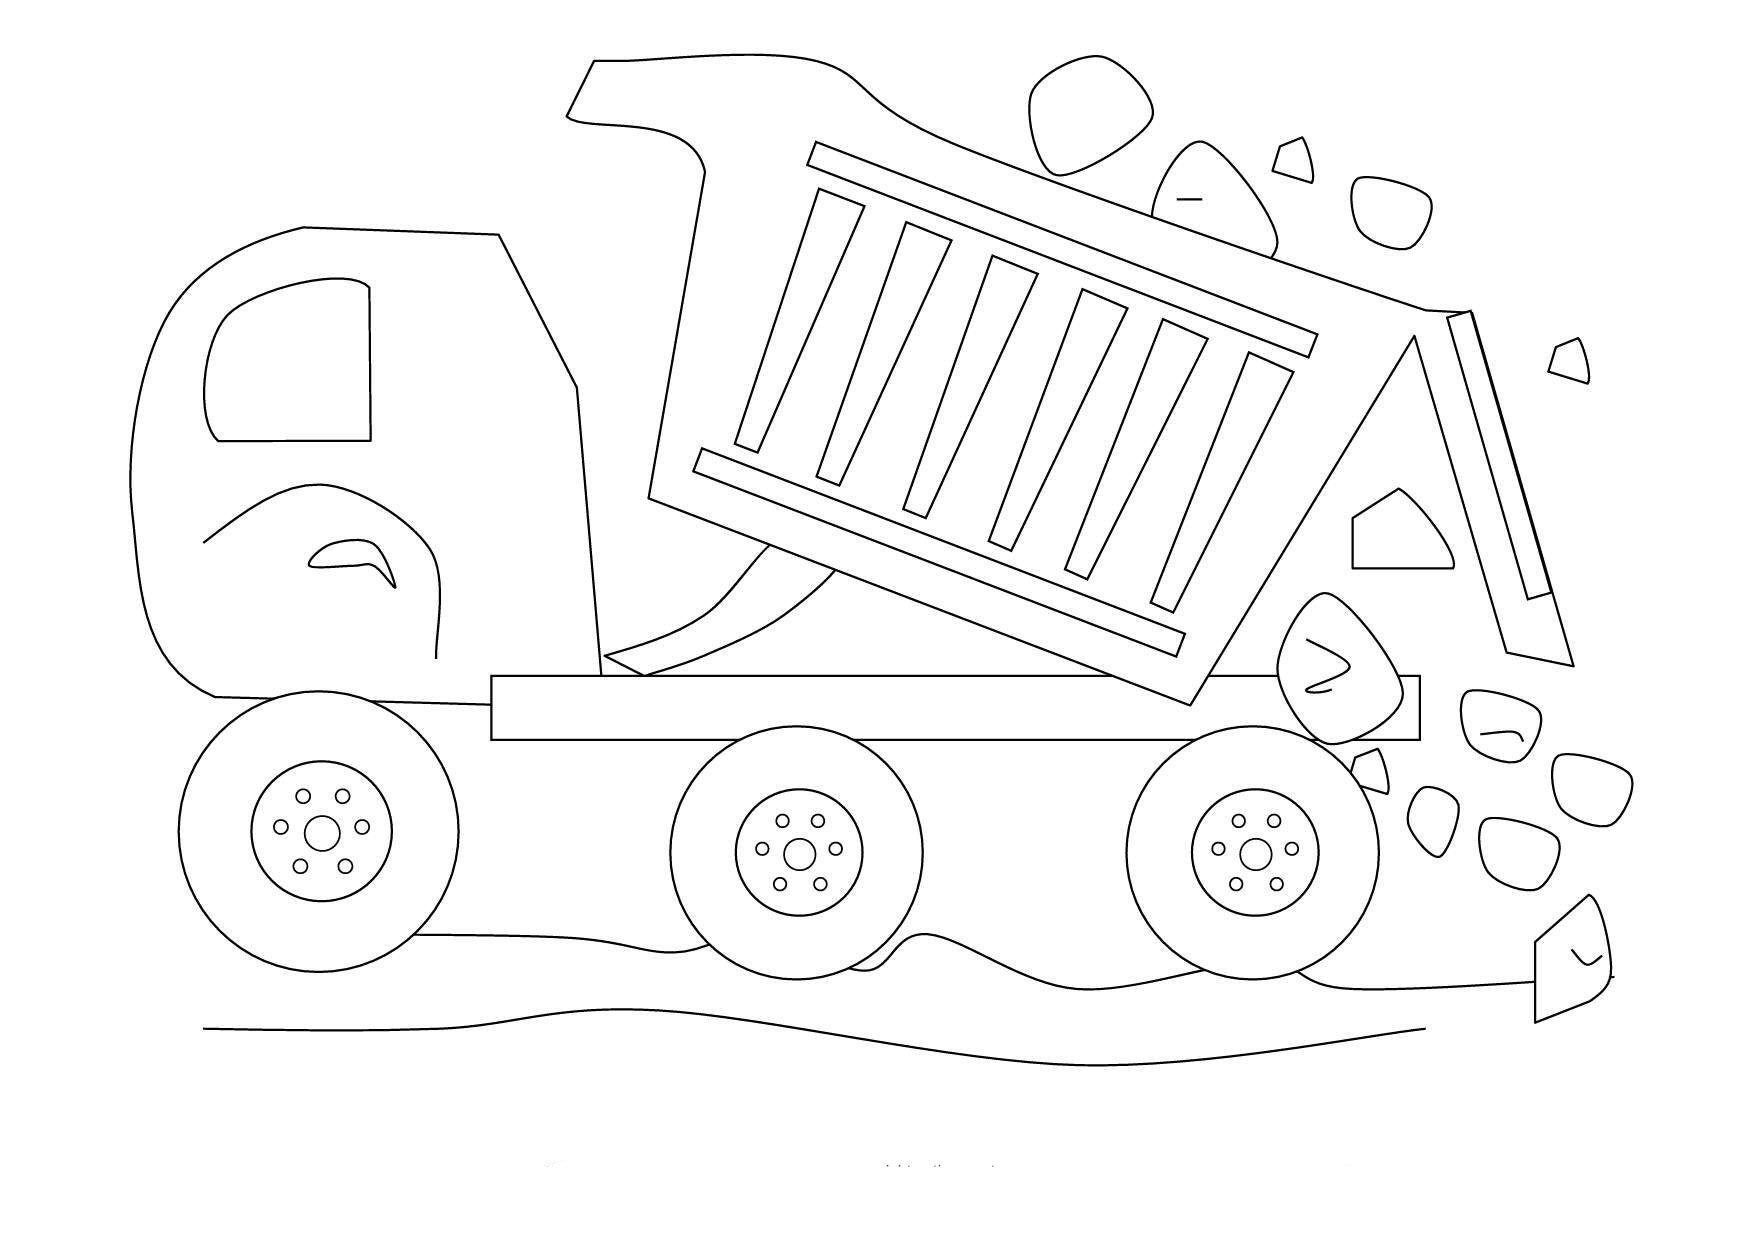 rock coloring pages rock coloring pages to download and print for free rock coloring pages